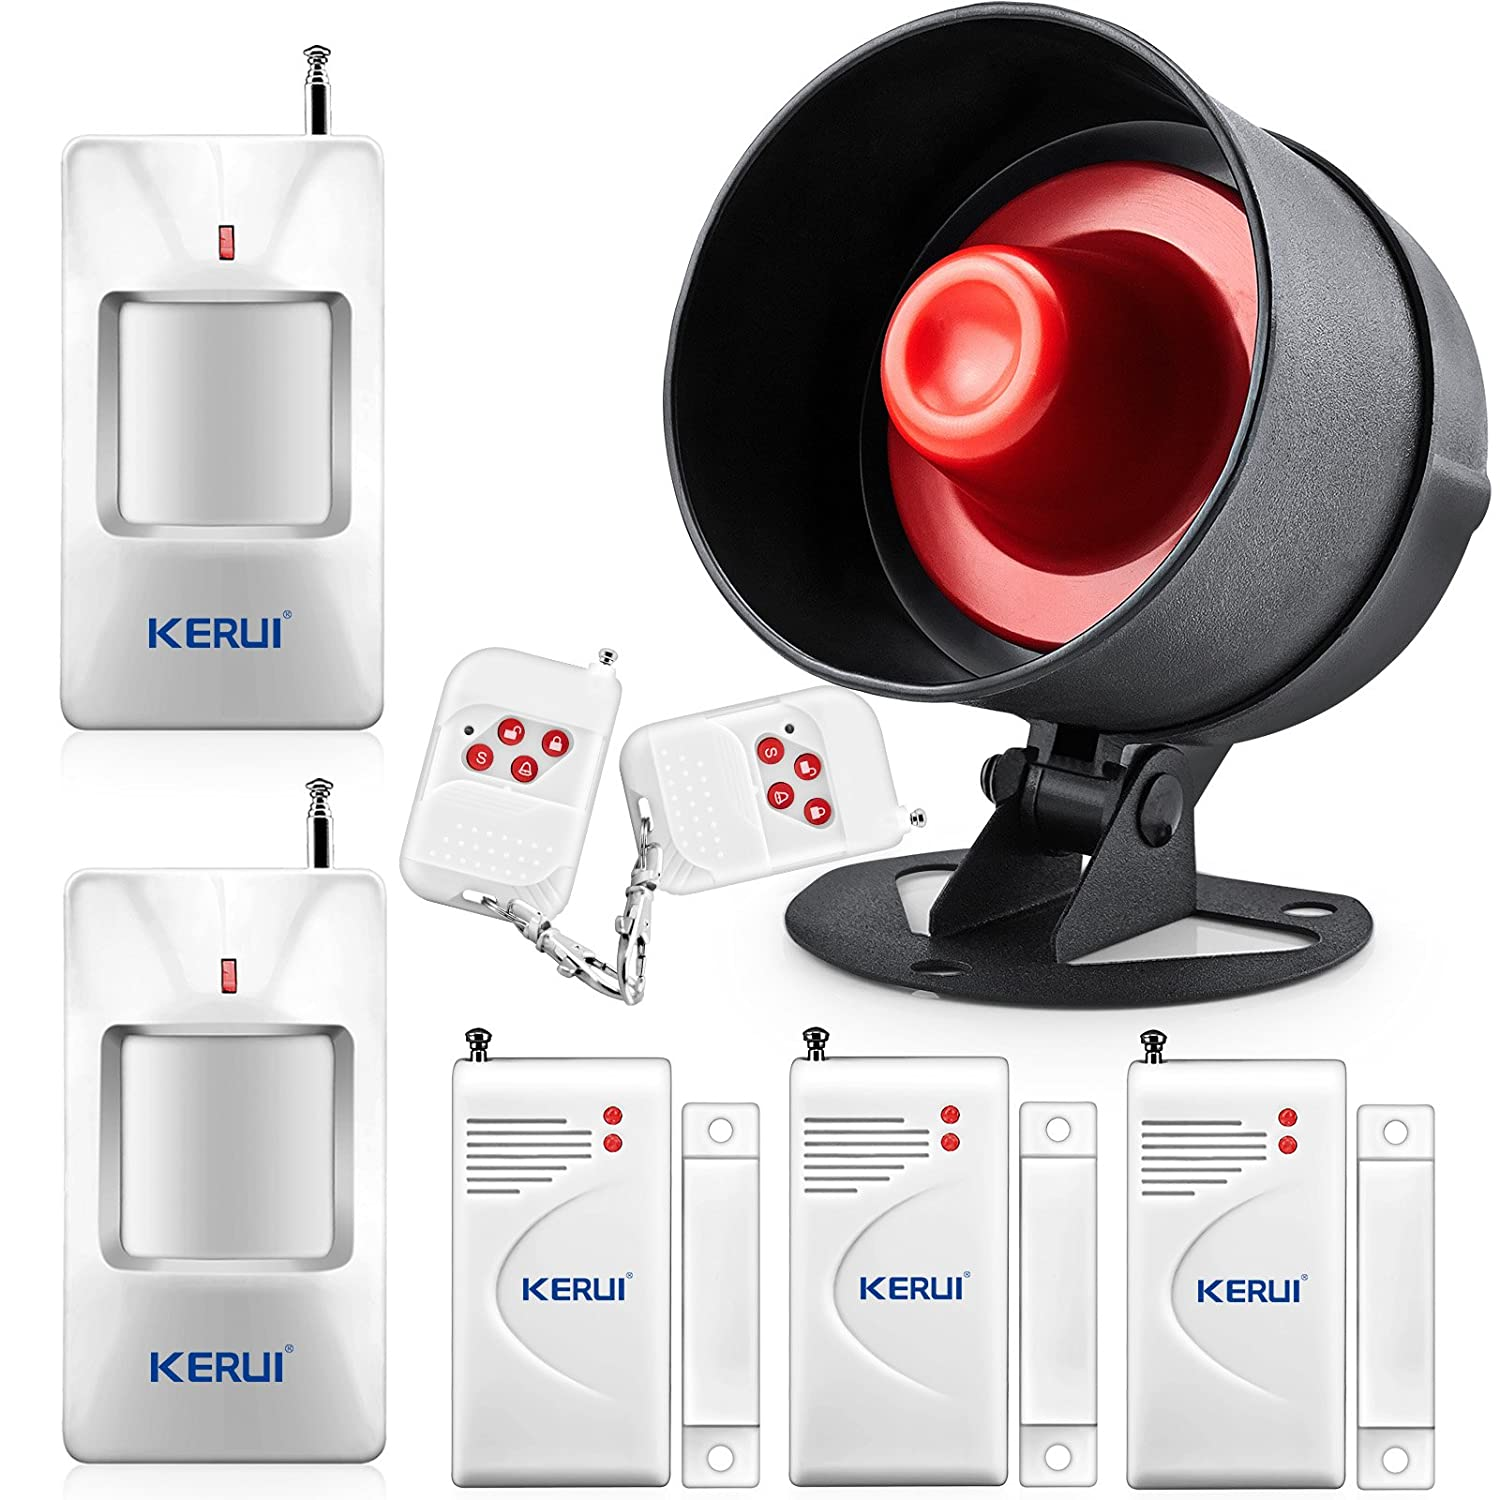 Top 10 Best Wireless Security Alarm Systems Buying Guide